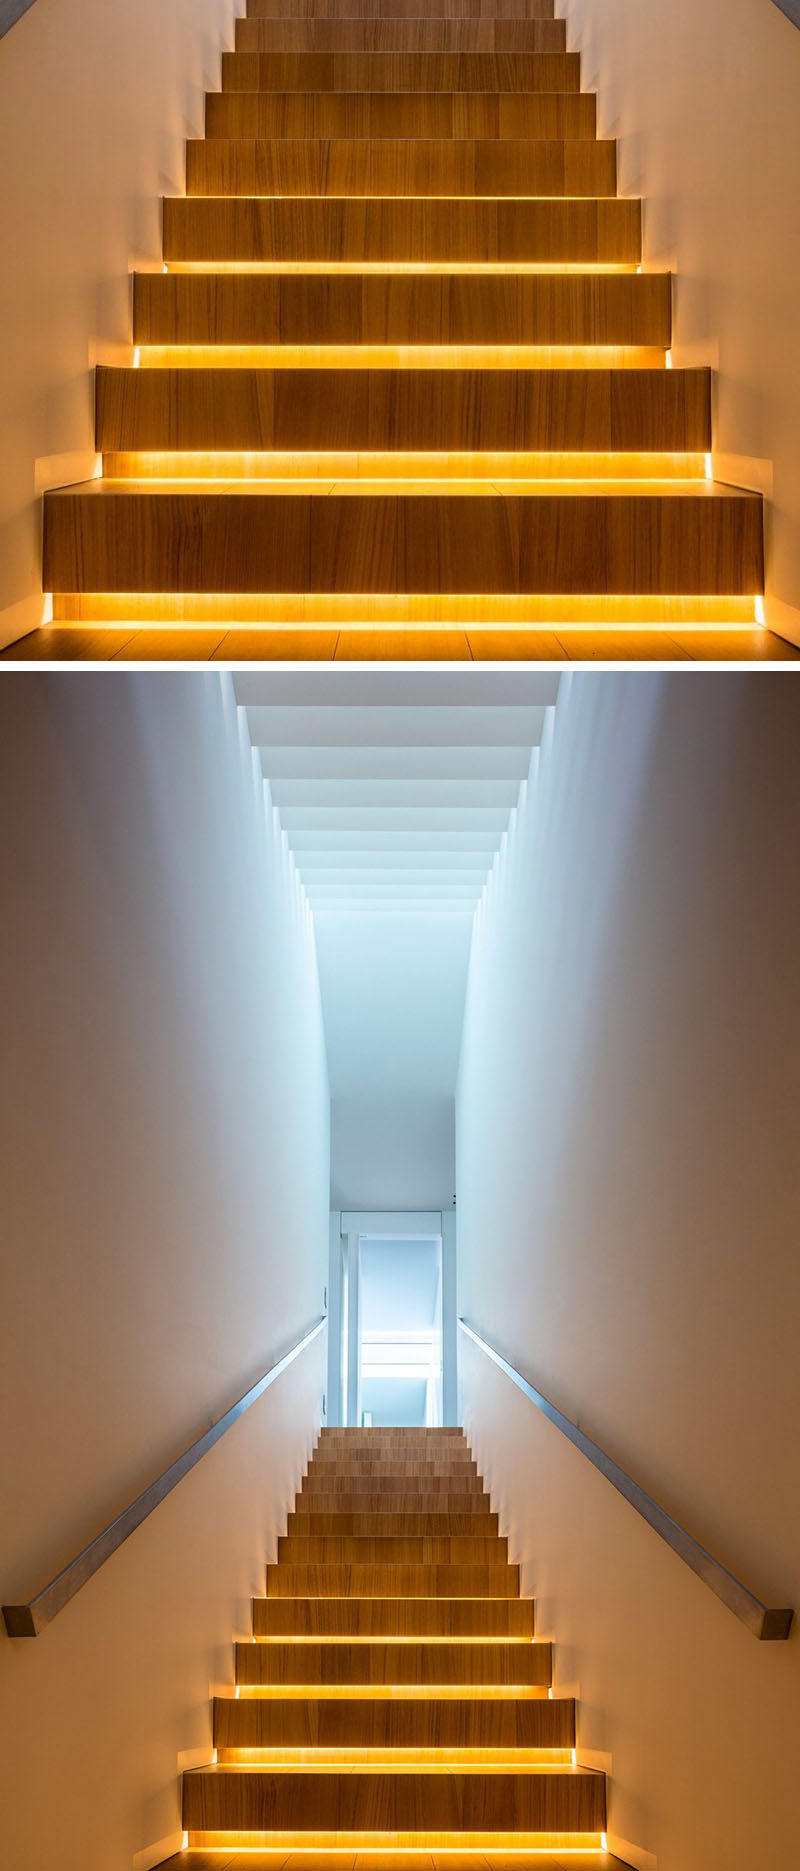 18 Examples Of Stair Details To Inspire You // These wooden stairs with hidden lighting, light up from underneath to ensure youll never miss a step again.